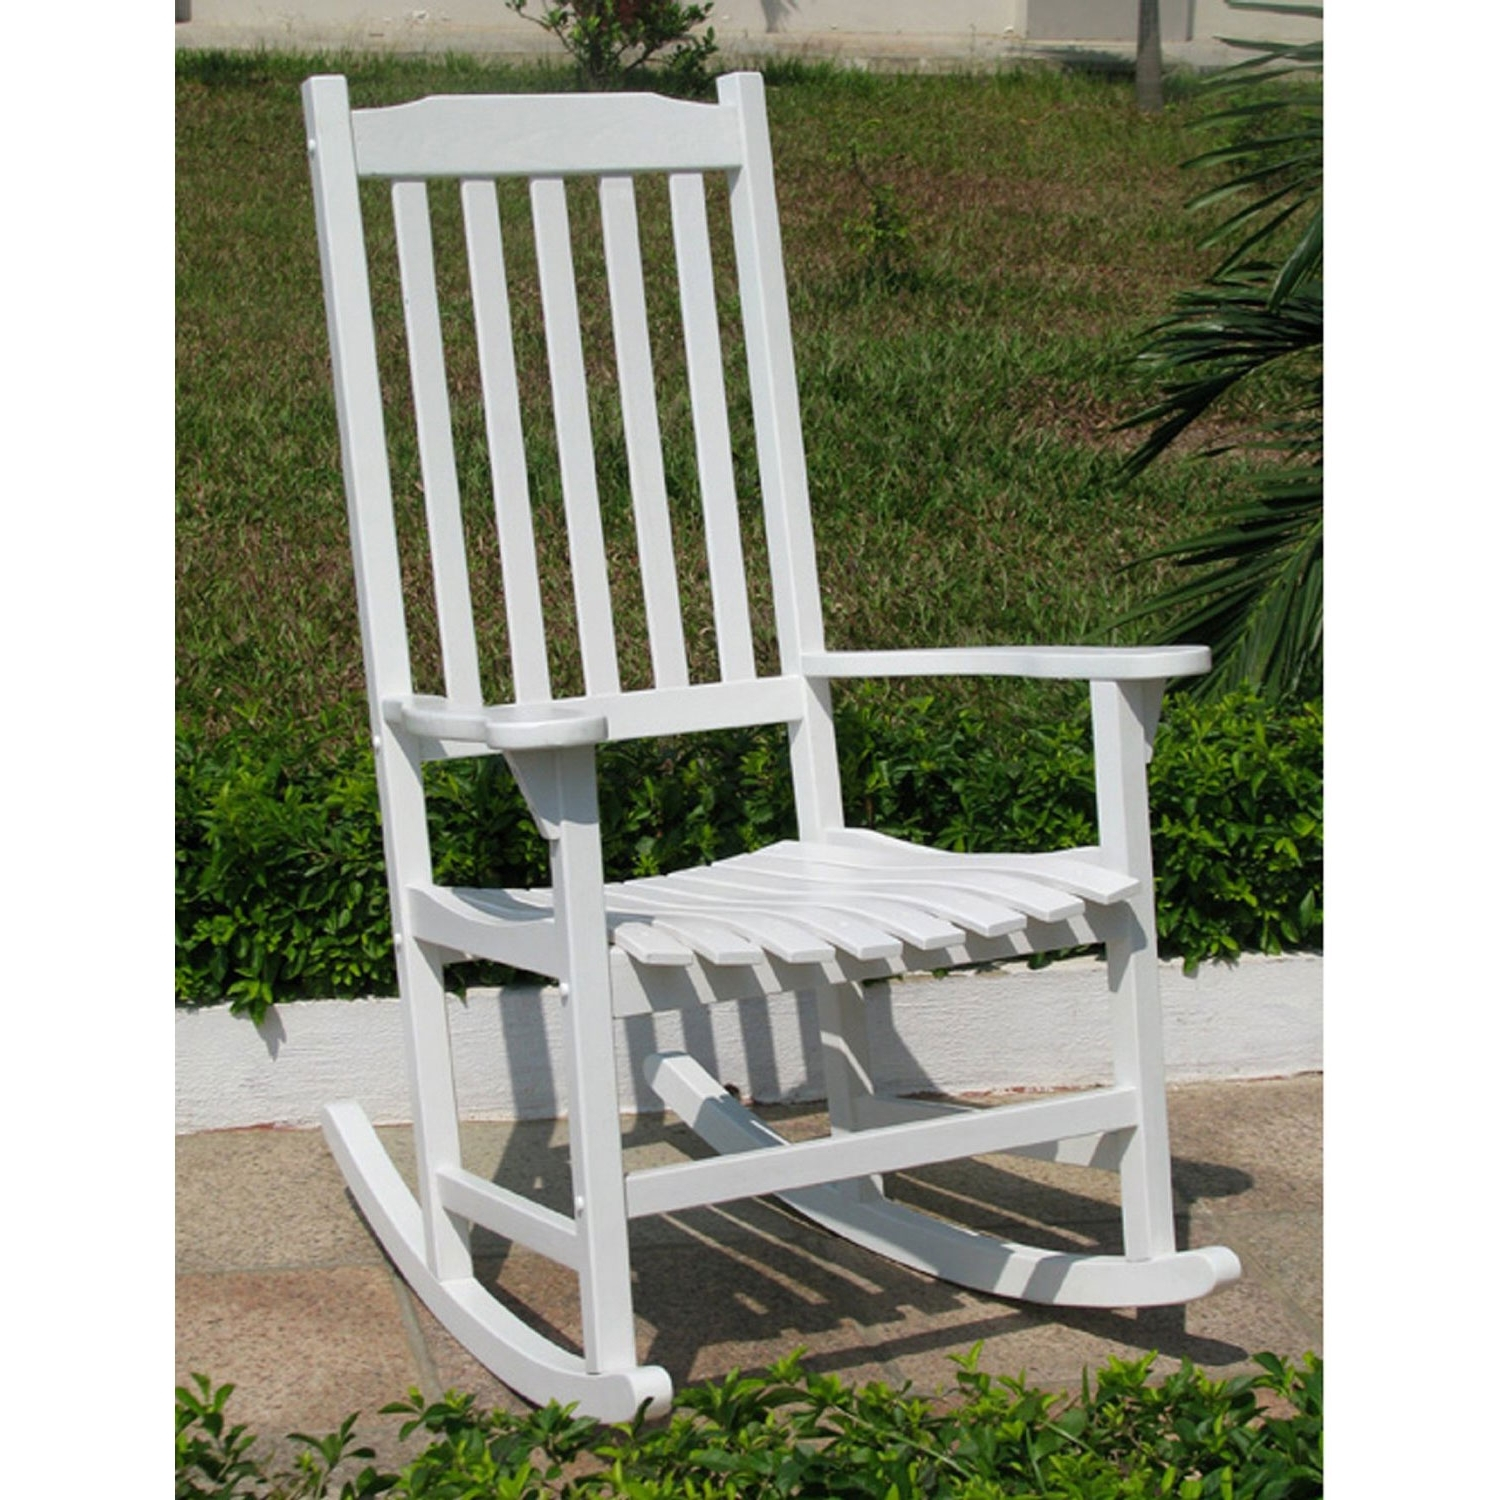 Inexpensive Patio Rocking Chairs Throughout Current Lovely Cheap Patio Chairs Semco Recycled Plastic Rocking Chair (Gallery 6 of 20)